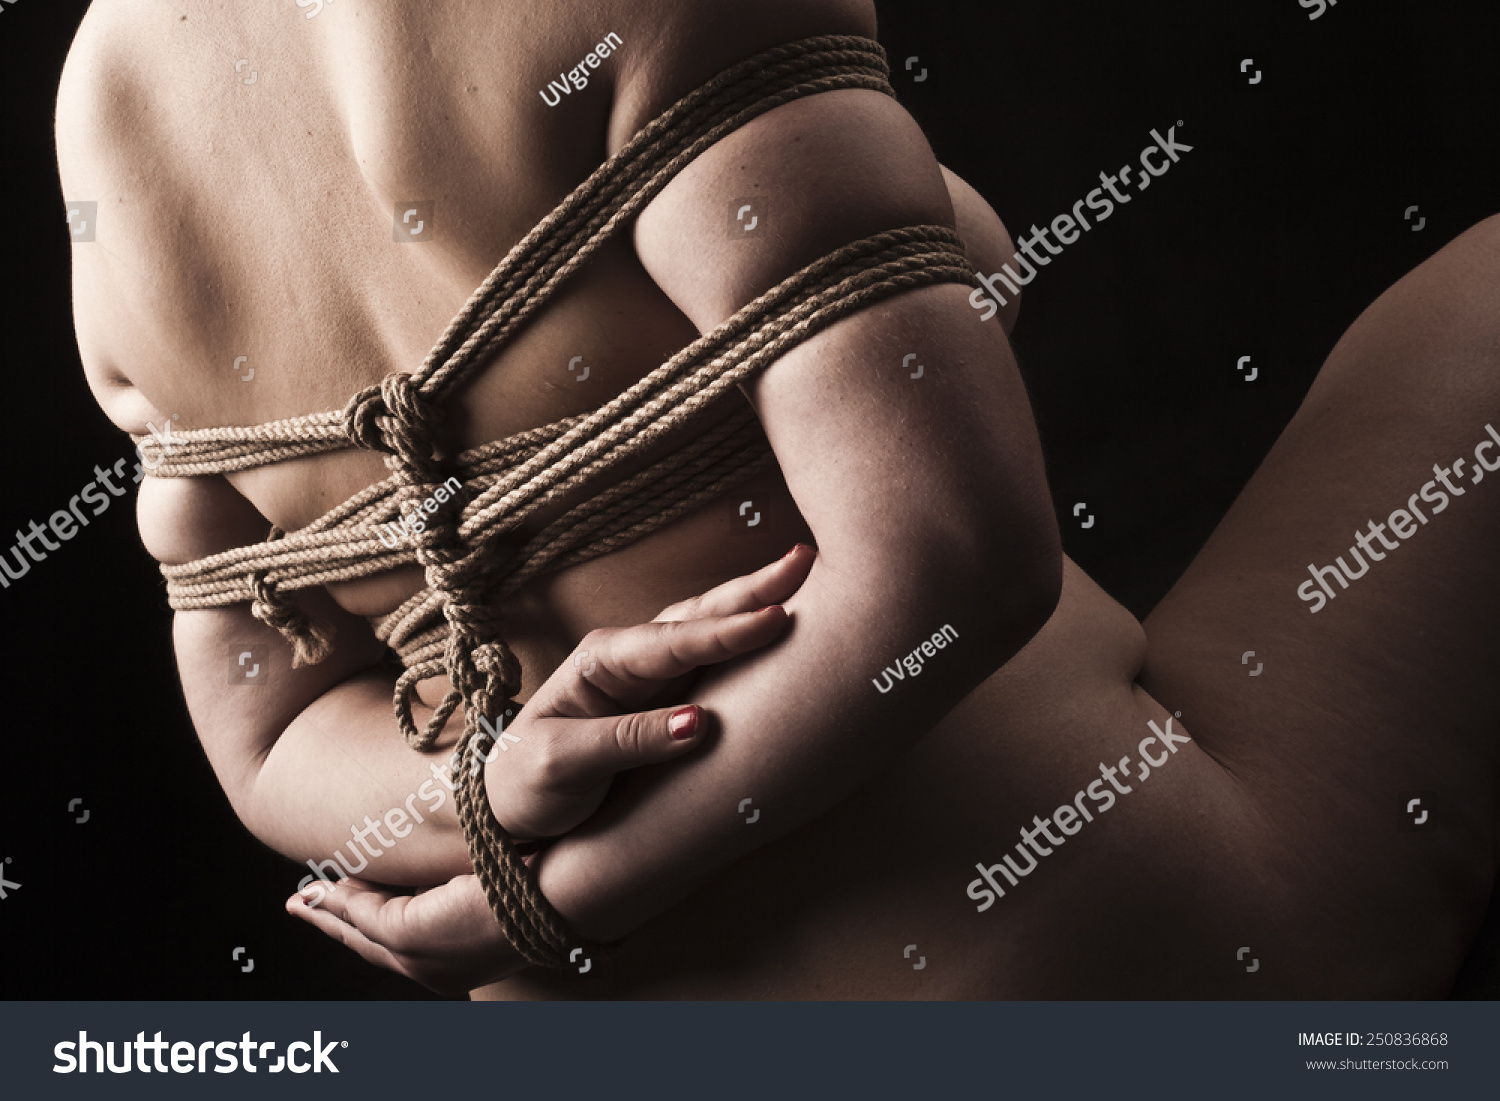 Young Submissive Woman In Japanese Bondage Takate Kote Bdsm Theme